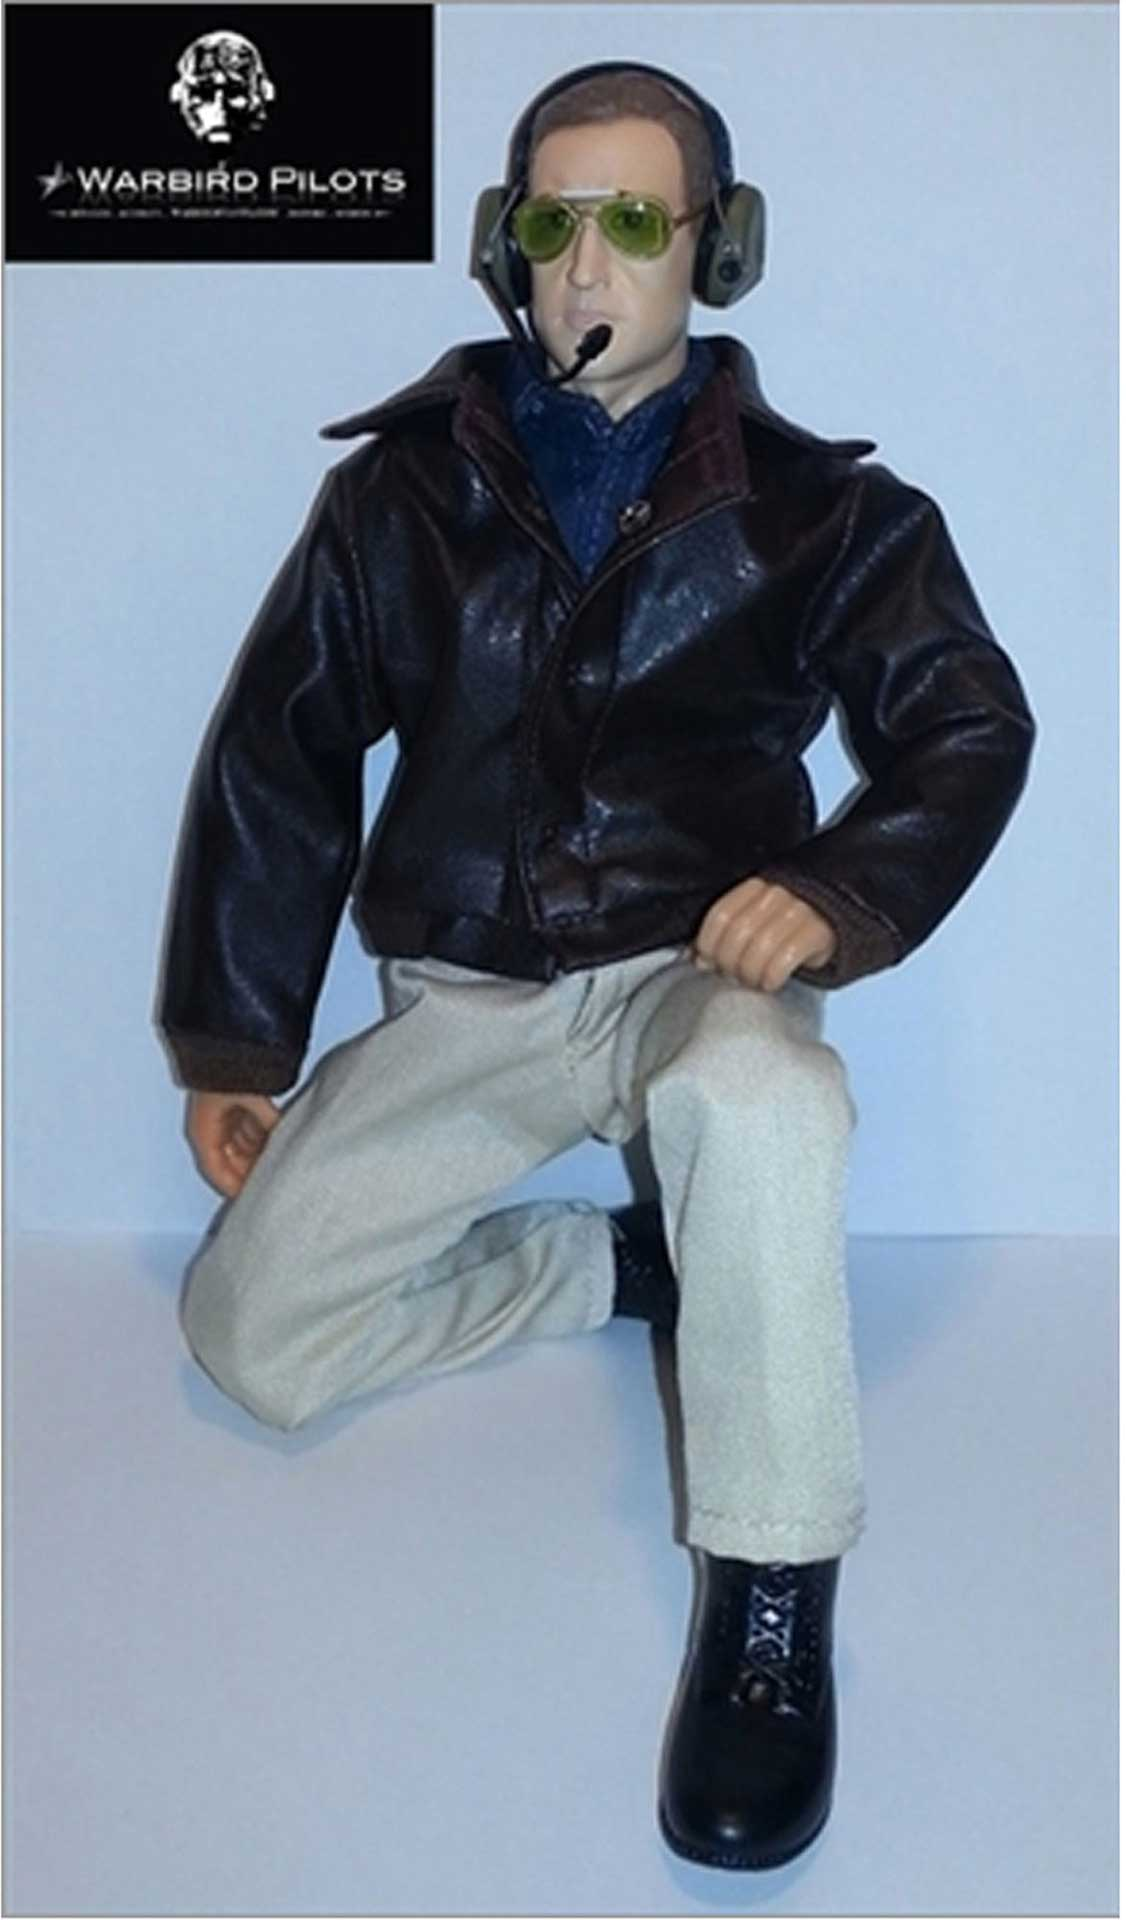 "WARBIRD PILOTS CIVIL PILOT 1:5-1:6 12"" WITH SUNGLASSES AND MOVABLE HEAD"